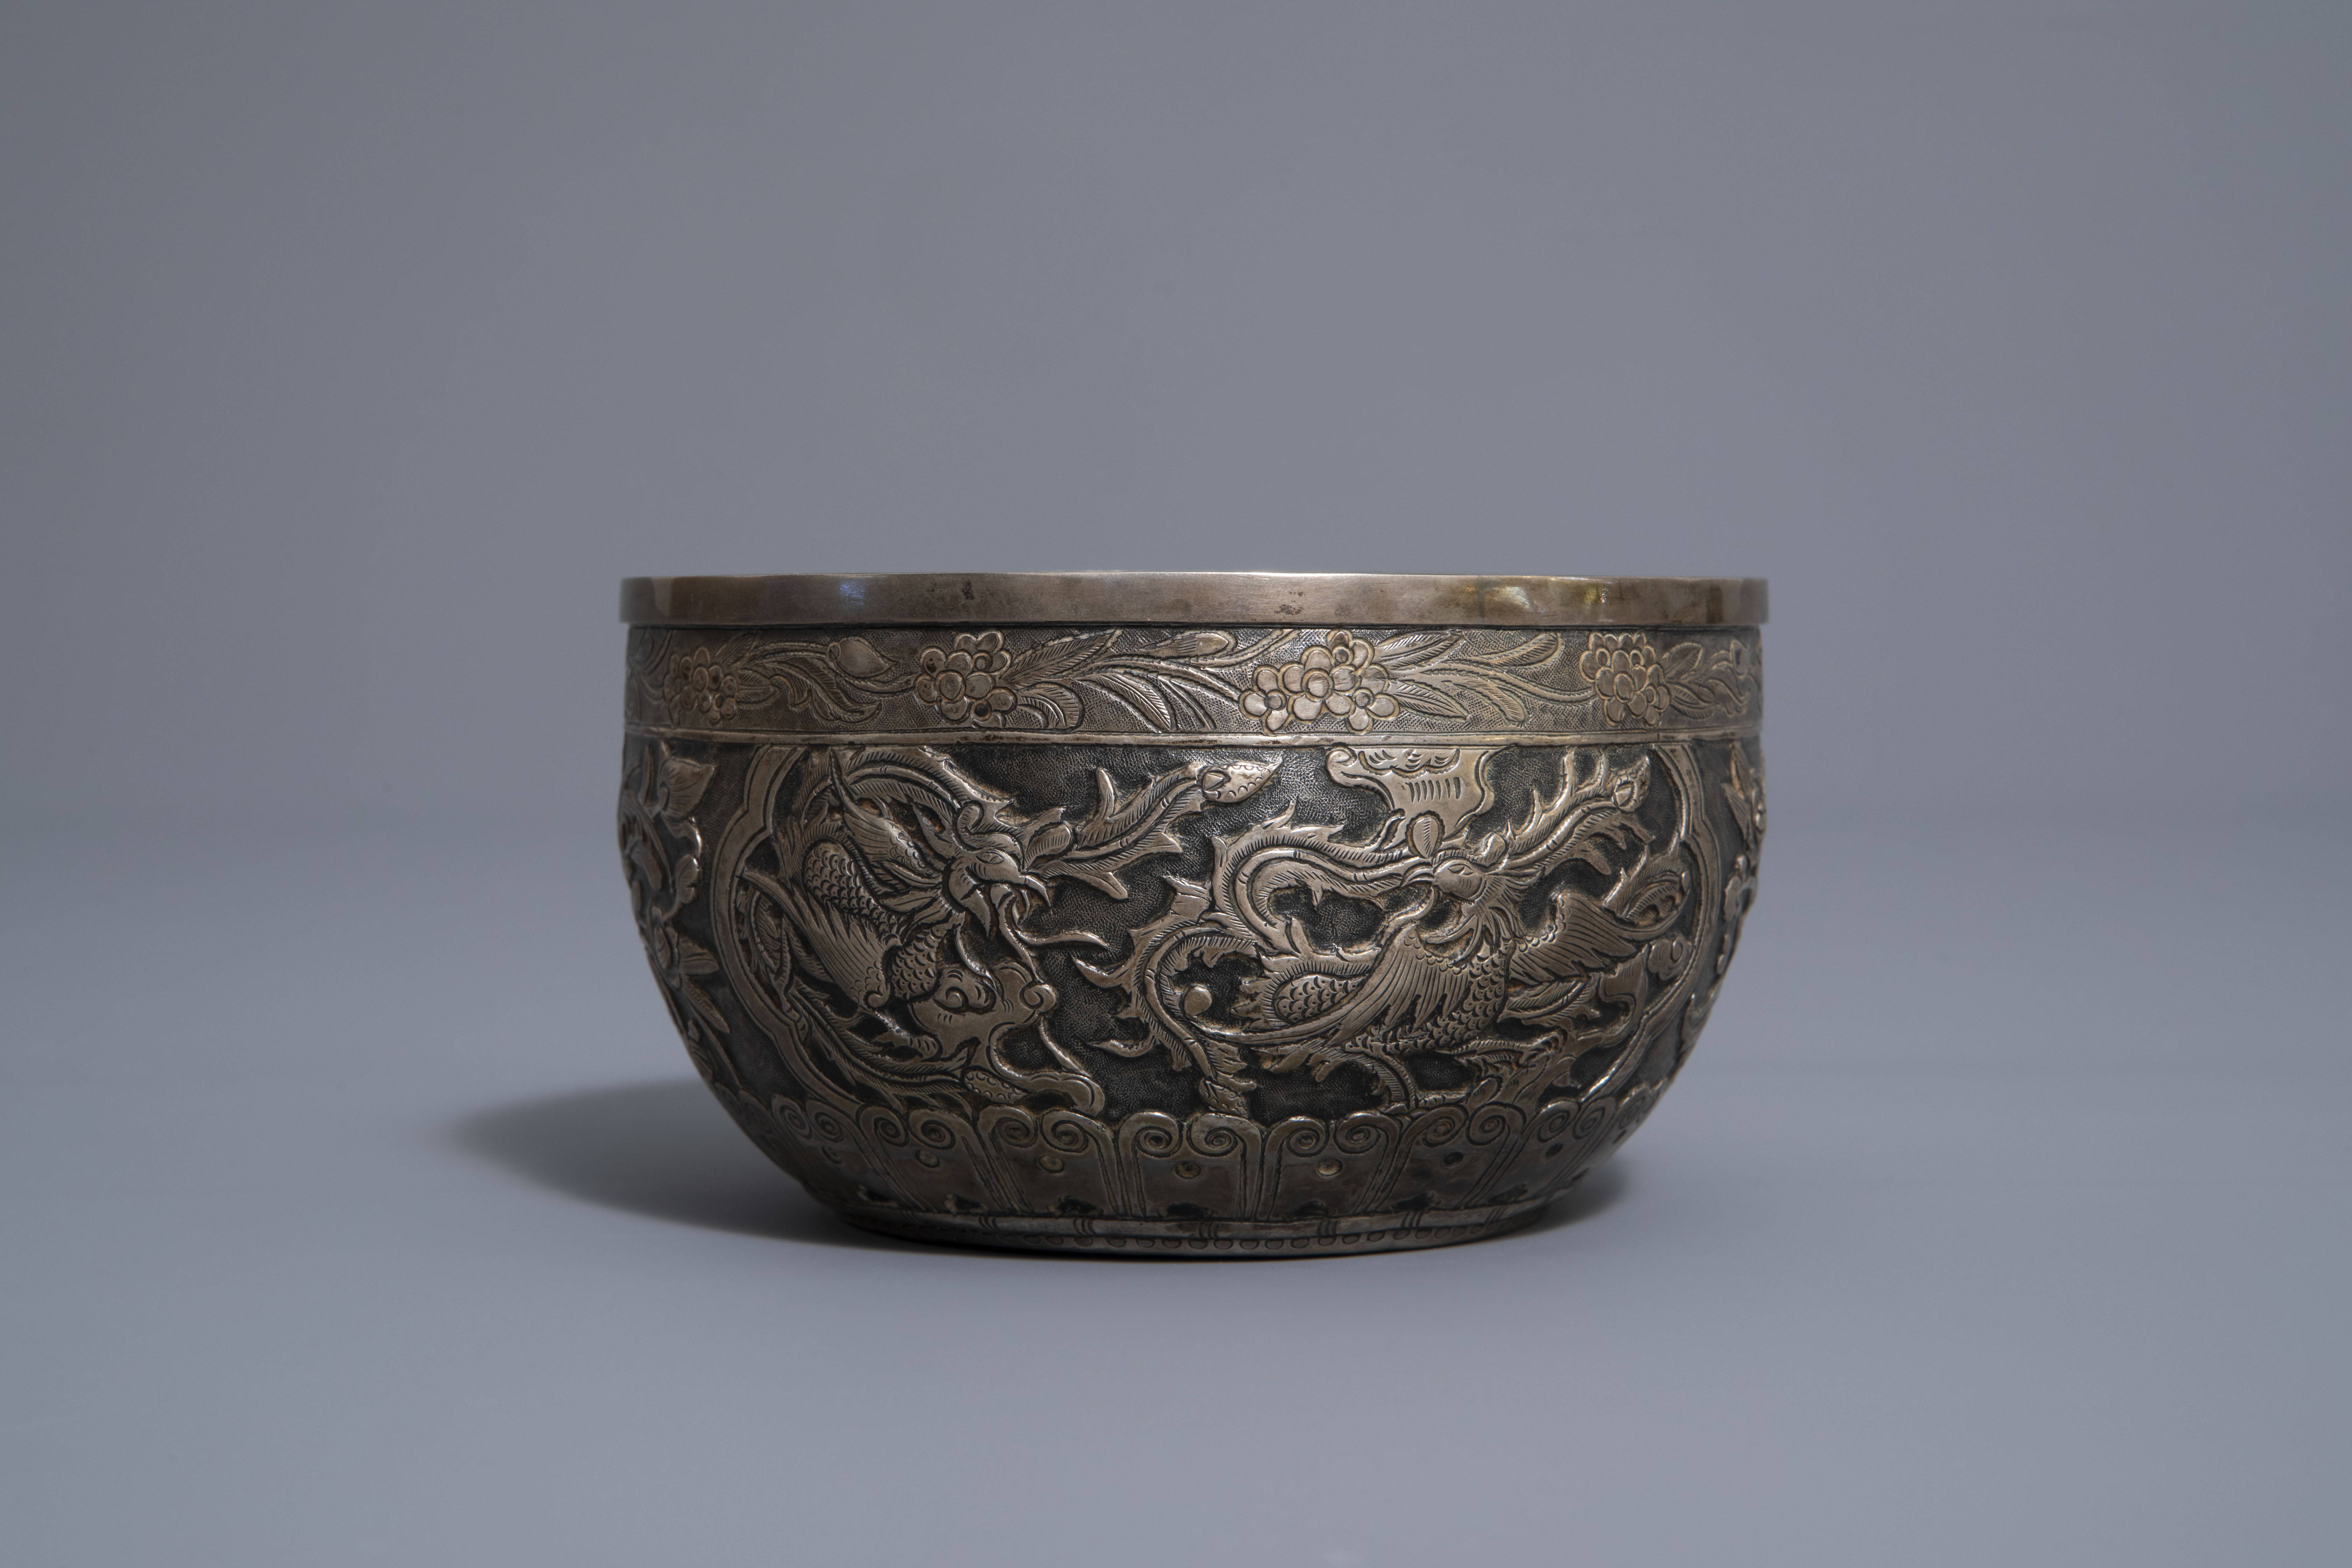 Five Chinese famille rose and silver cups and saucers and a bowl, 19th/20th C. - Image 12 of 17